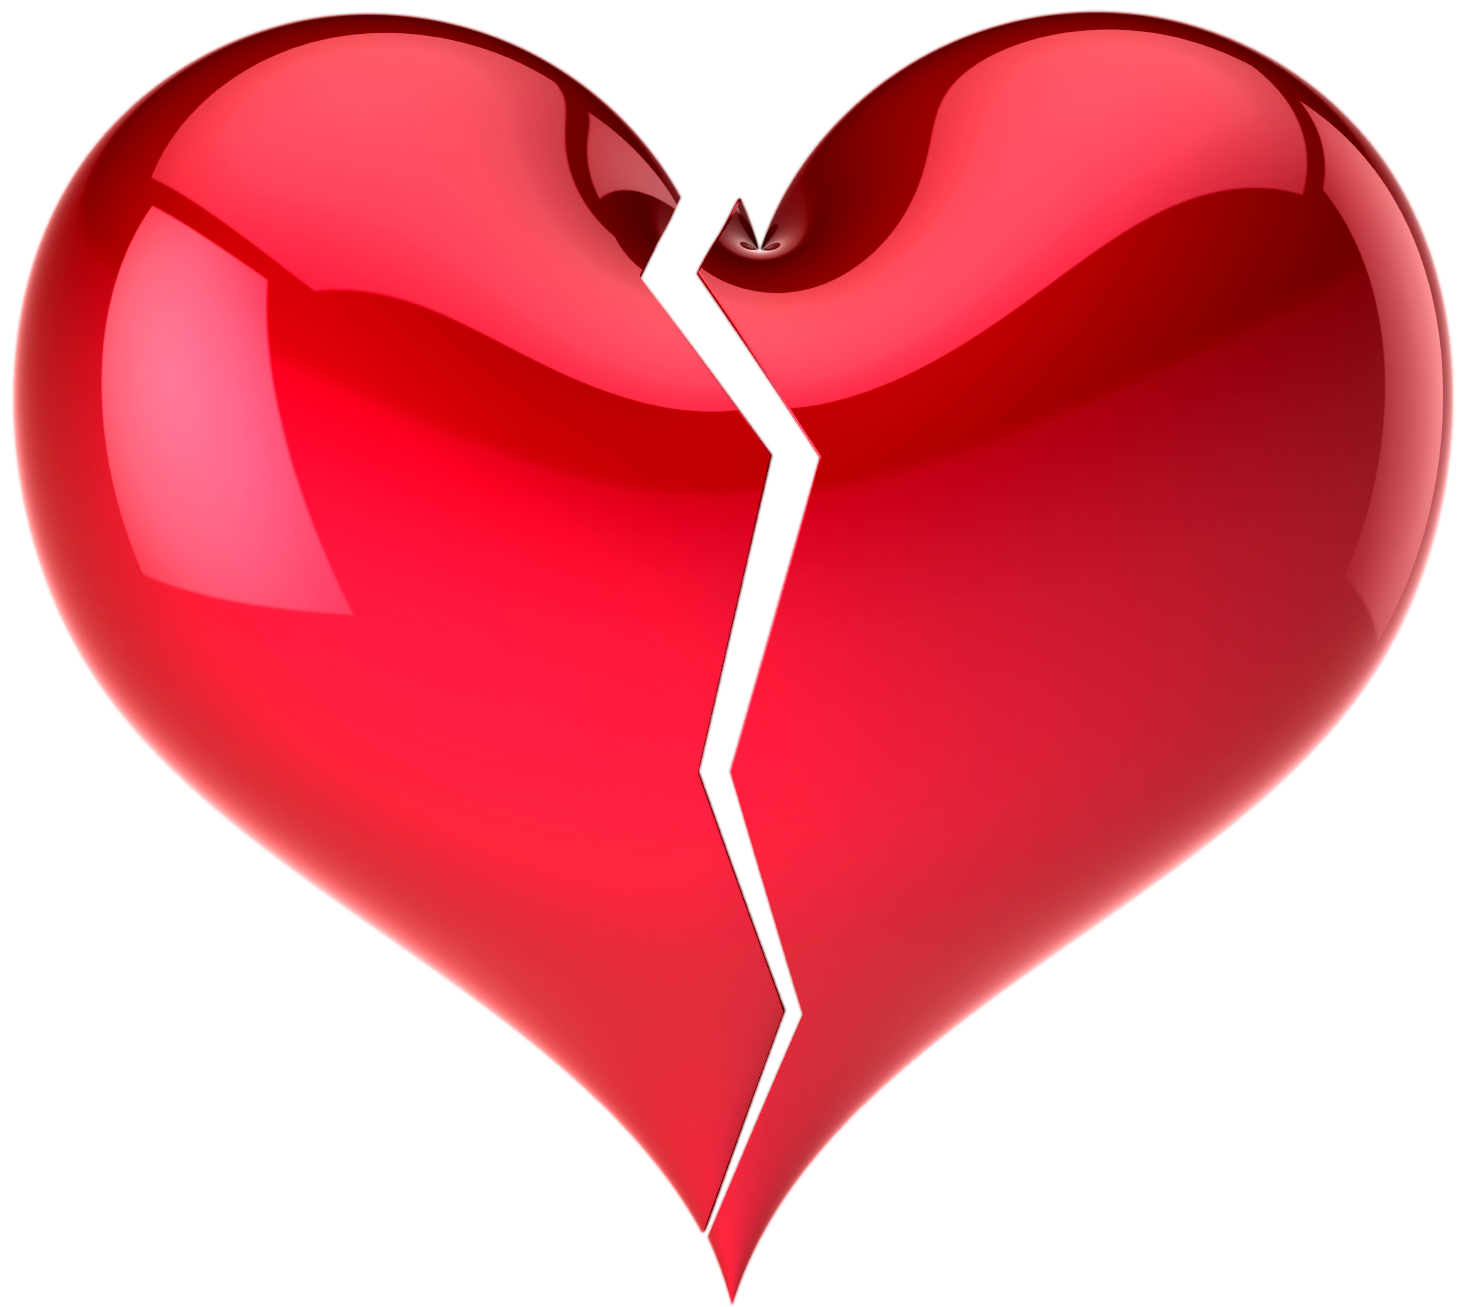 Heart png transparent background. Images and clipart free